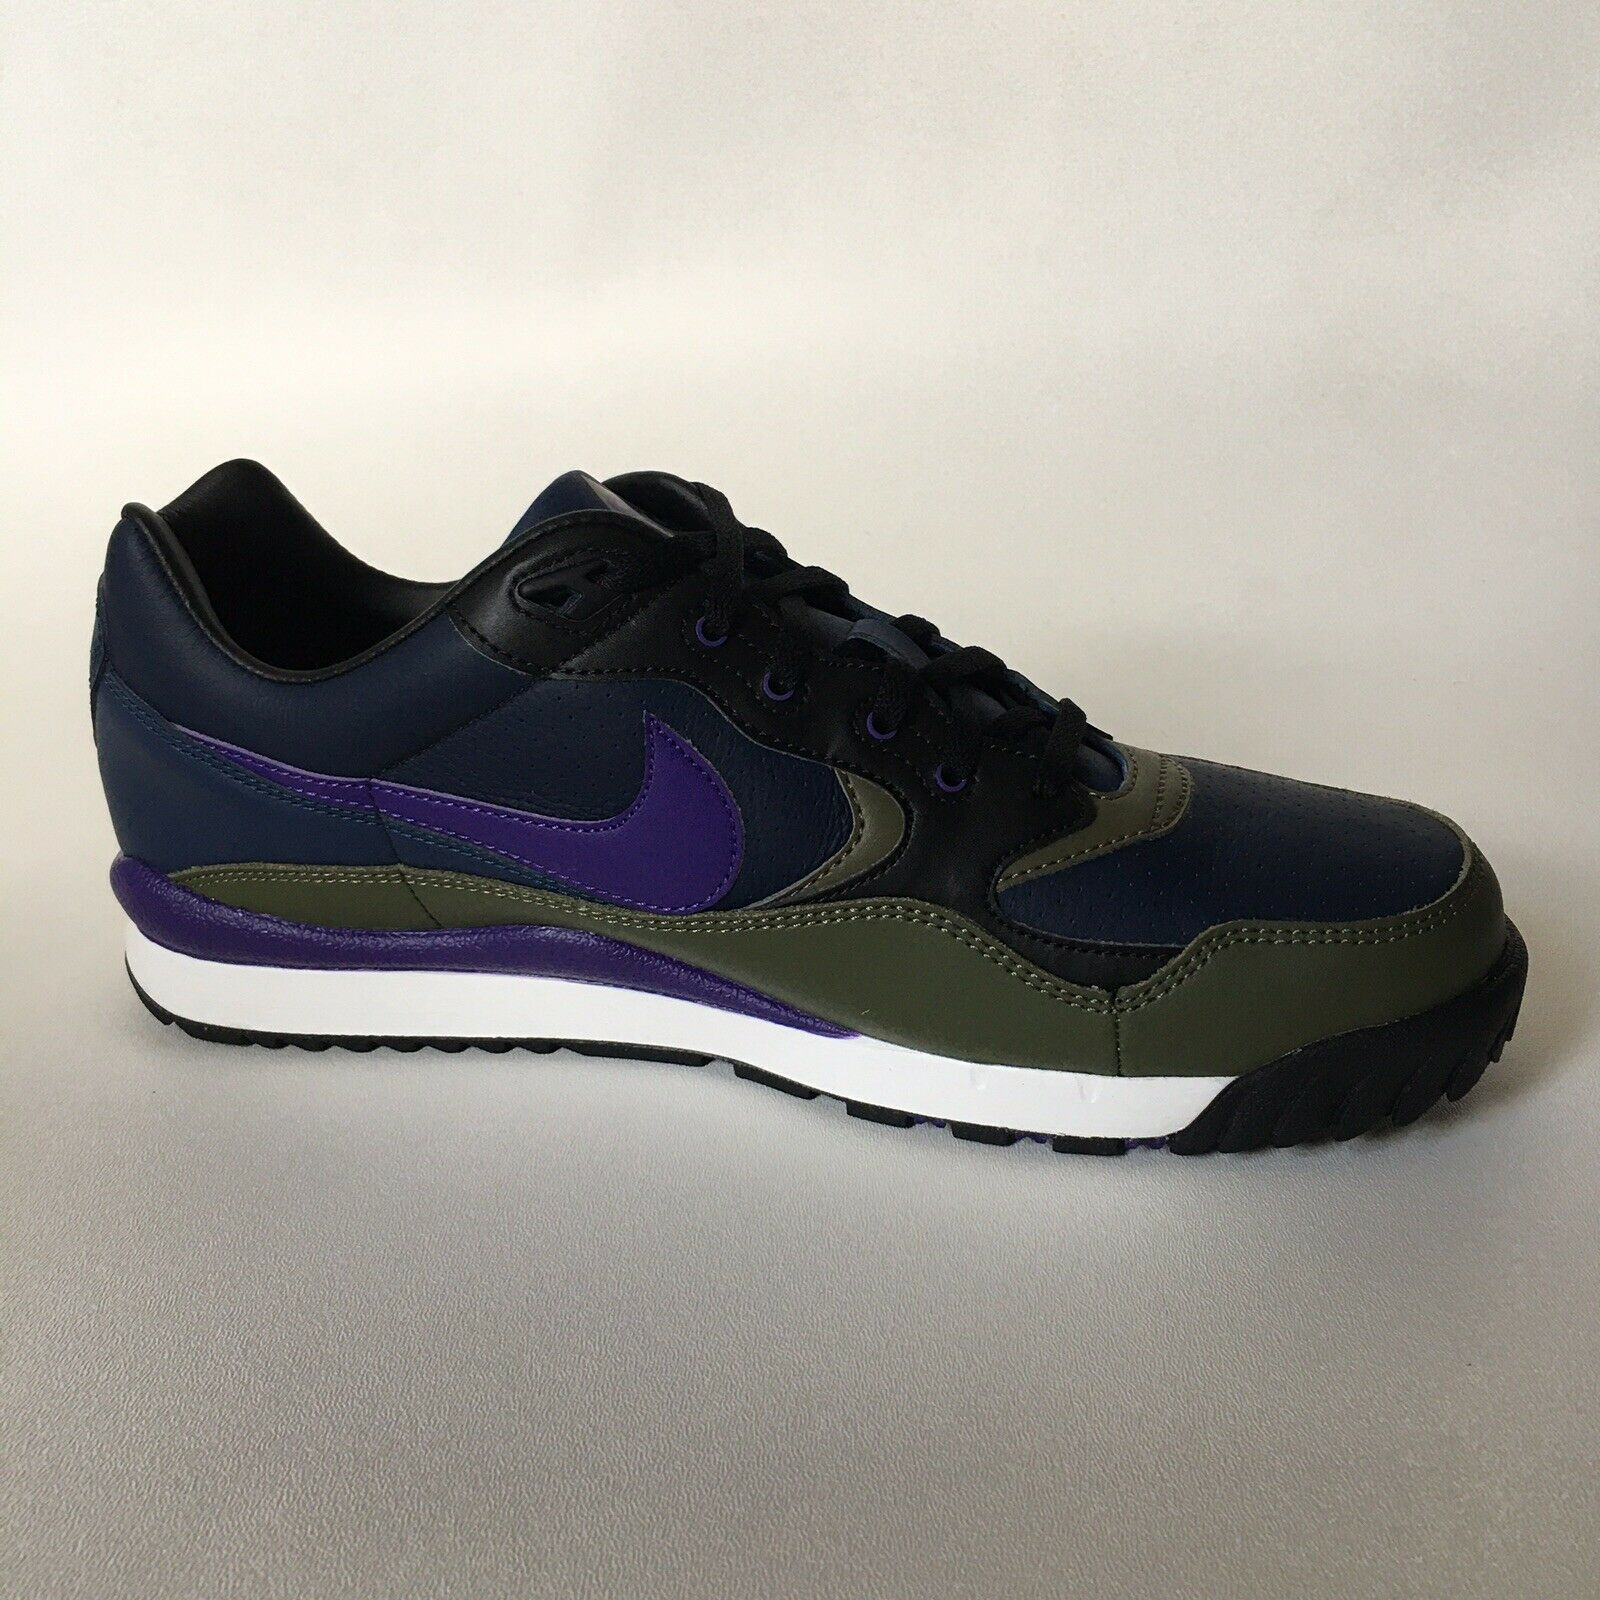 Unisex Nike Air Wildwood ACG    Wmn UK8 US10.5 EU42.5.  Mn UK8 US9 EU42.5     AO3116-400